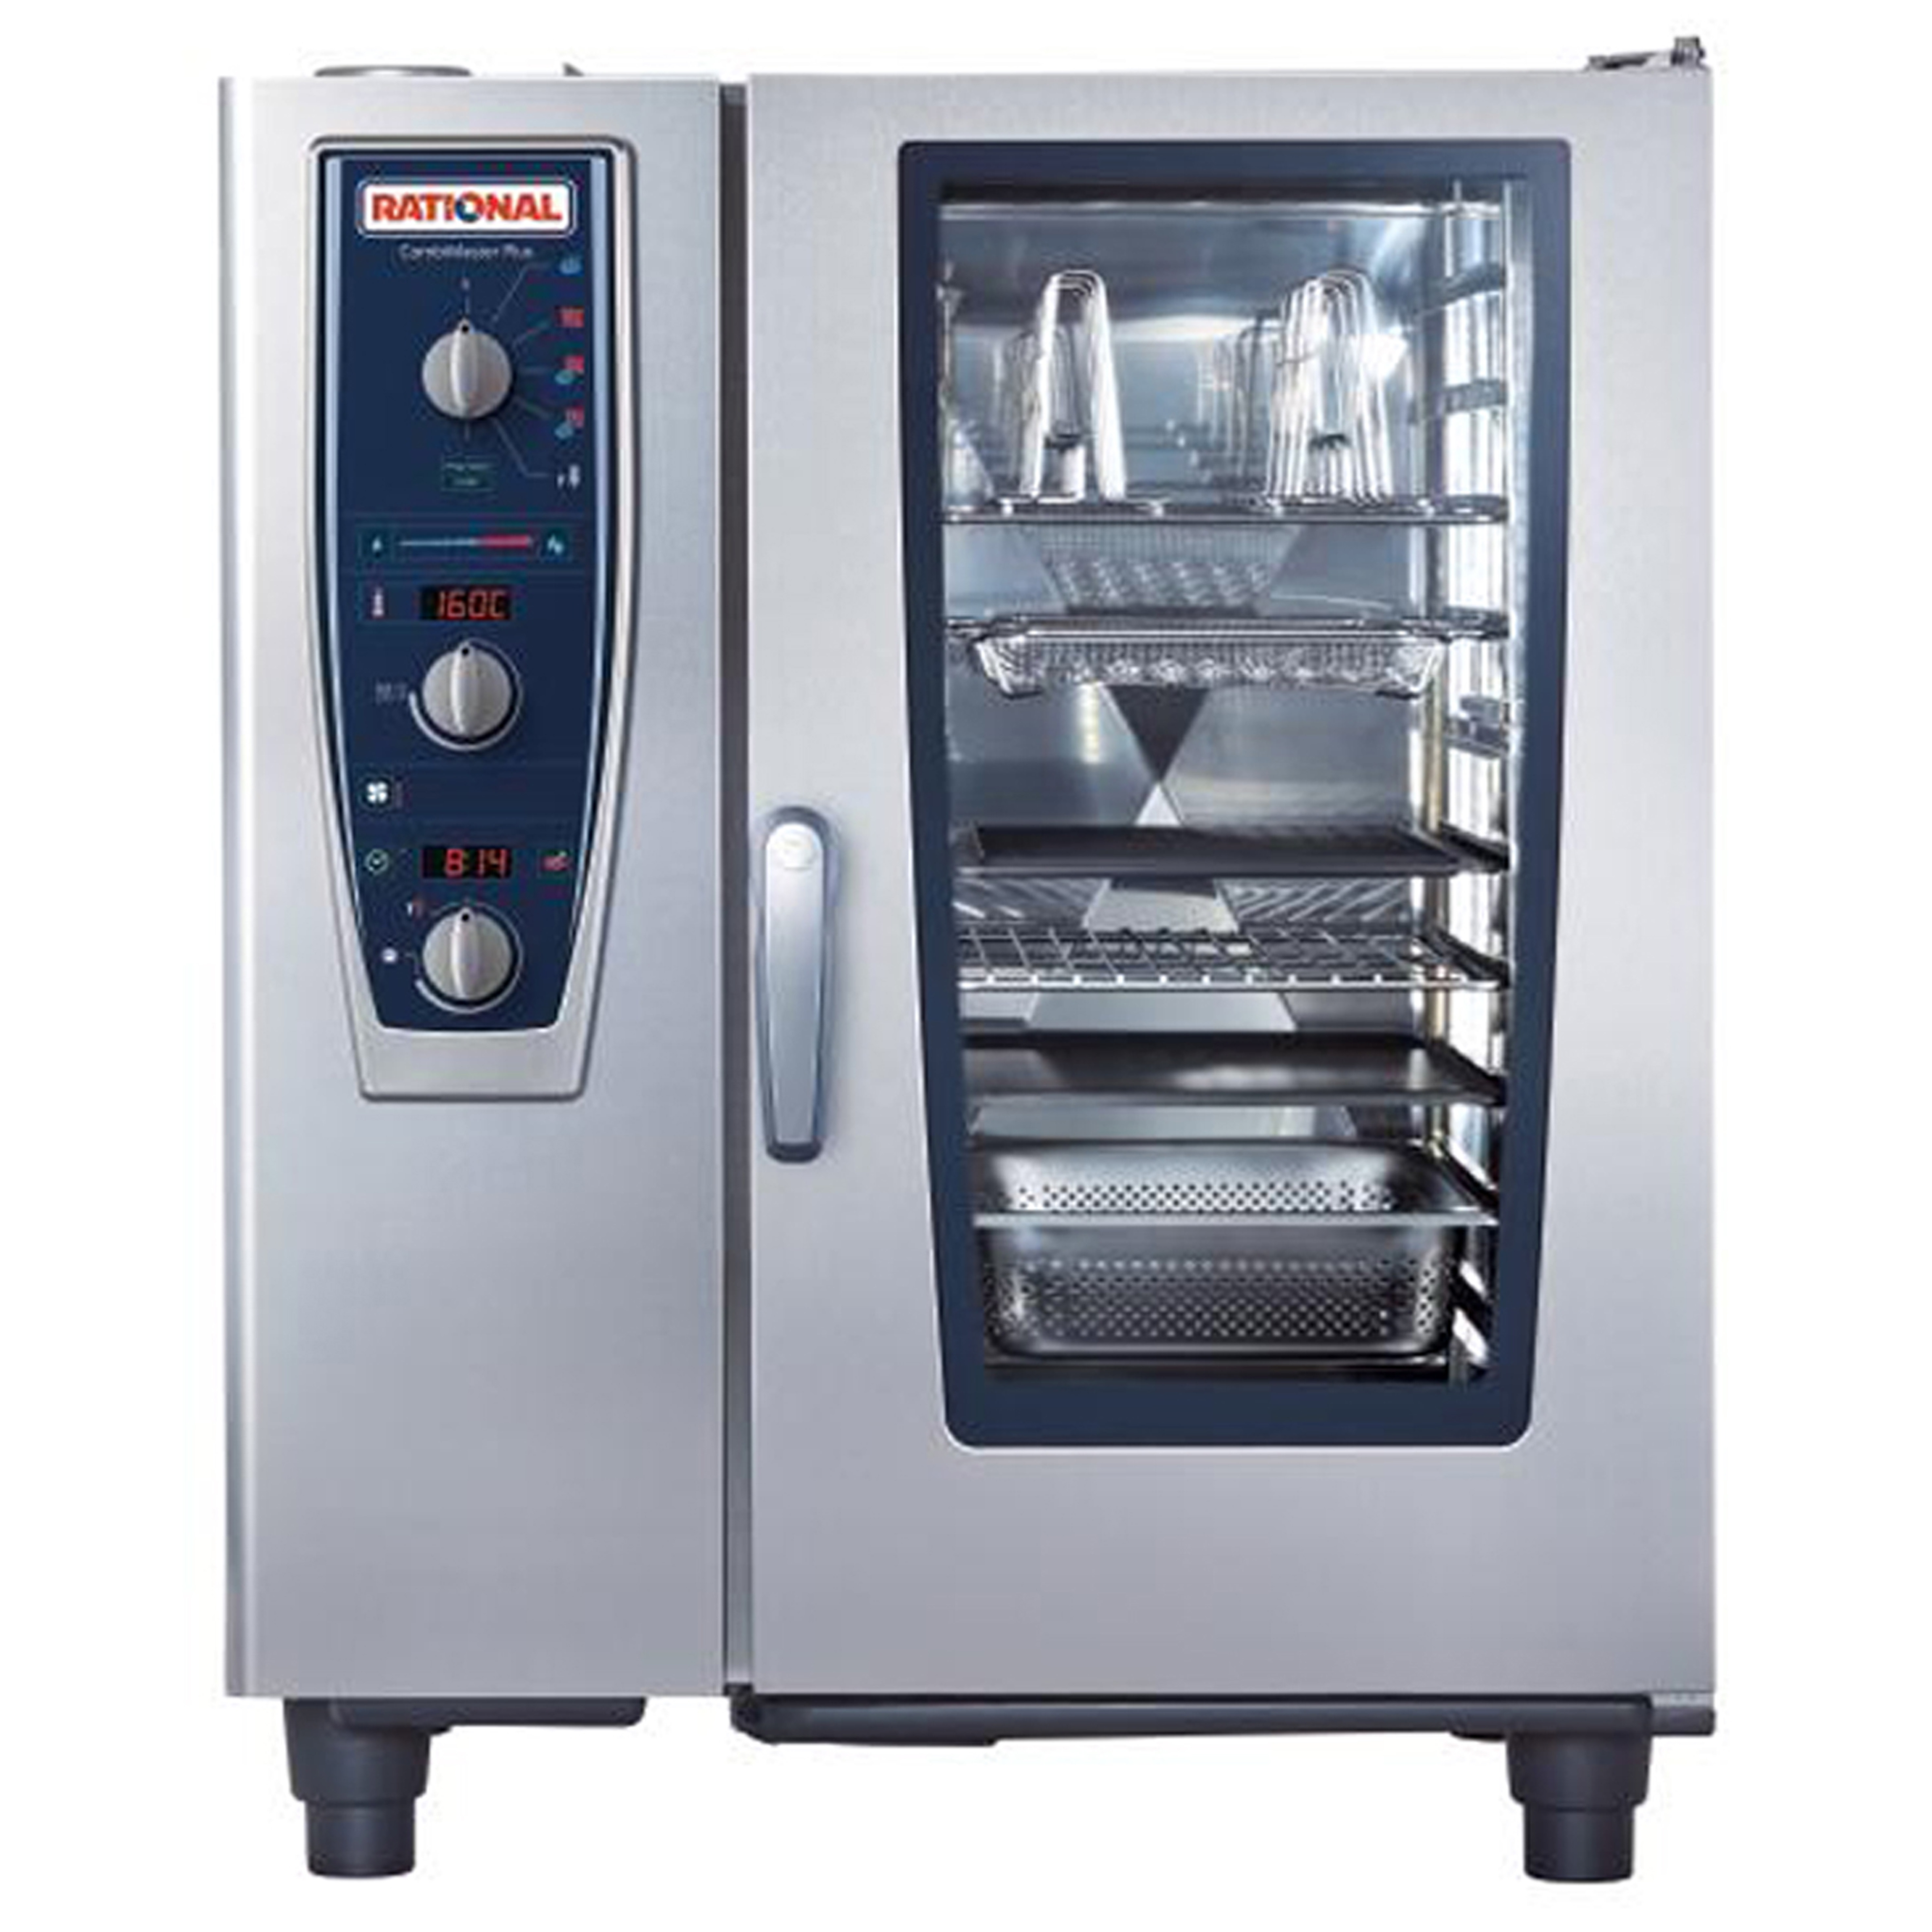 RATIONAL B119206.27E202 combi oven, gas